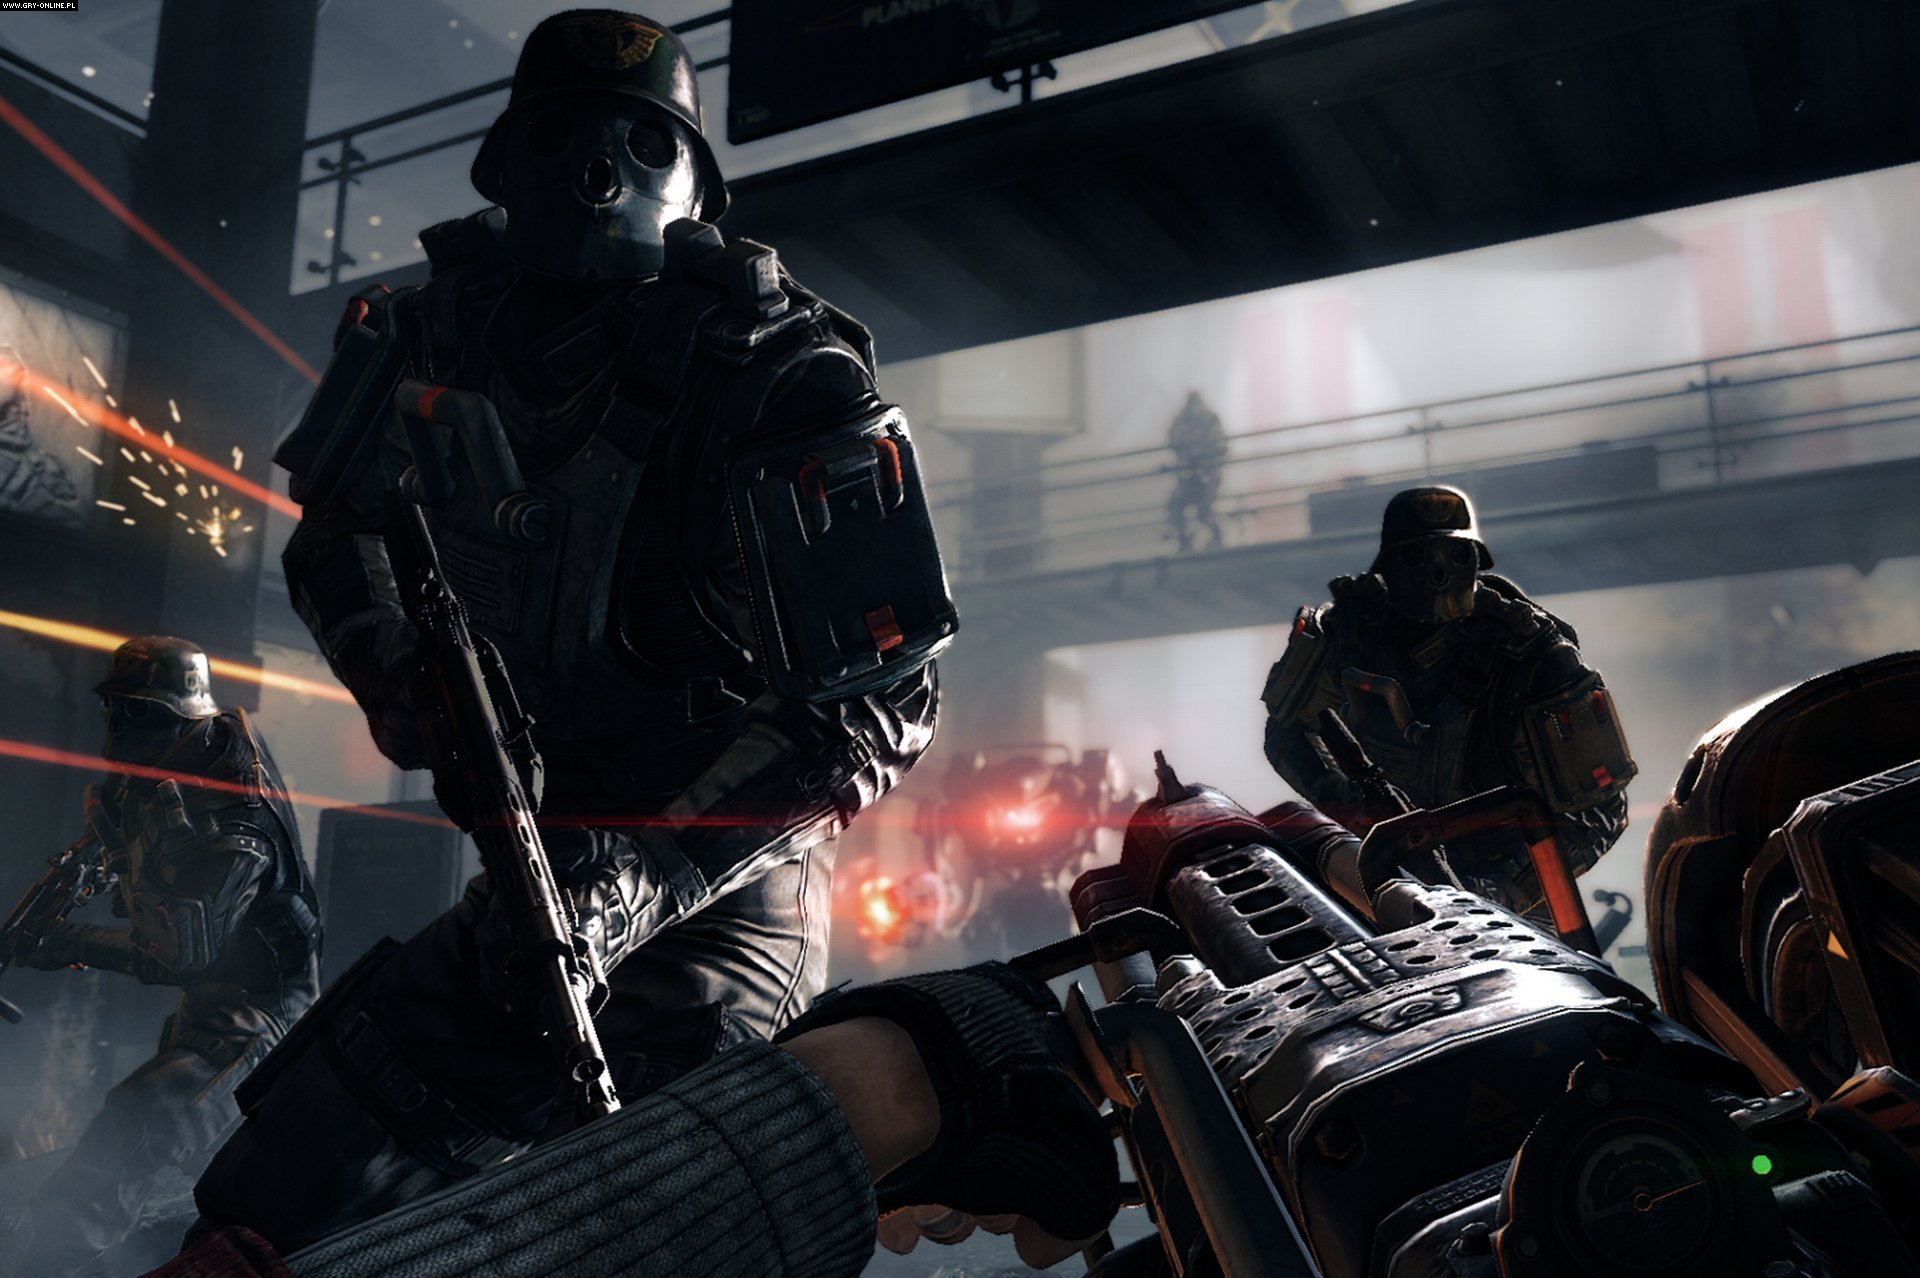 Wolfenstein The New Order Hd Wallpaper Wolfenstein The New Order Full Hd Wallpaper And